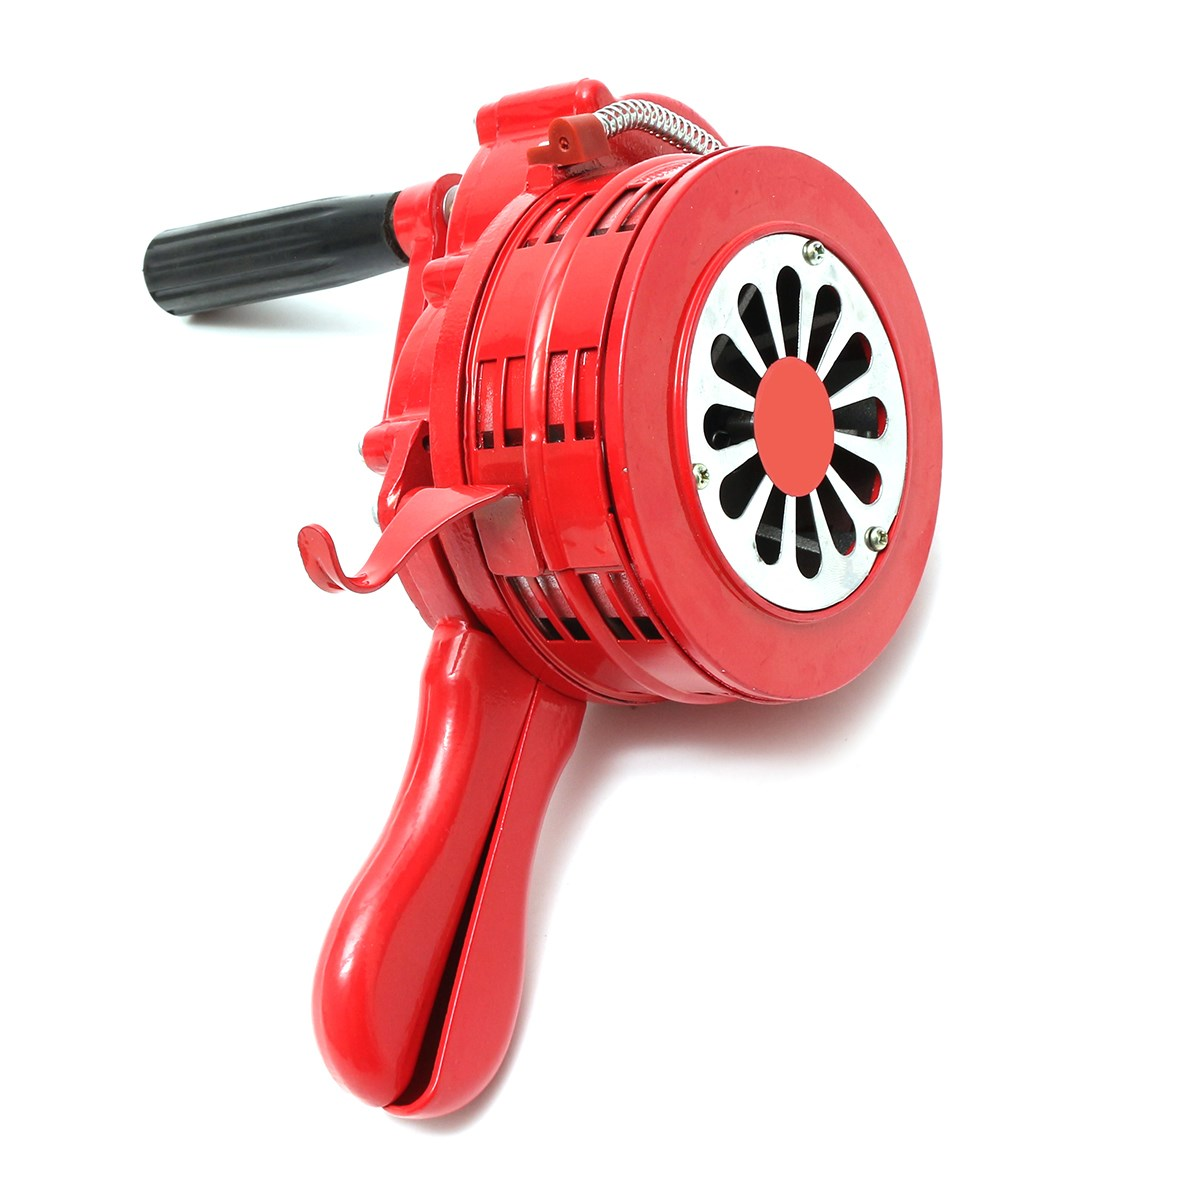 Safurance 4 5 Red Aluminium Alloy Handheld Manual Operated Security Alarm Air Raid Siren Portable Safety